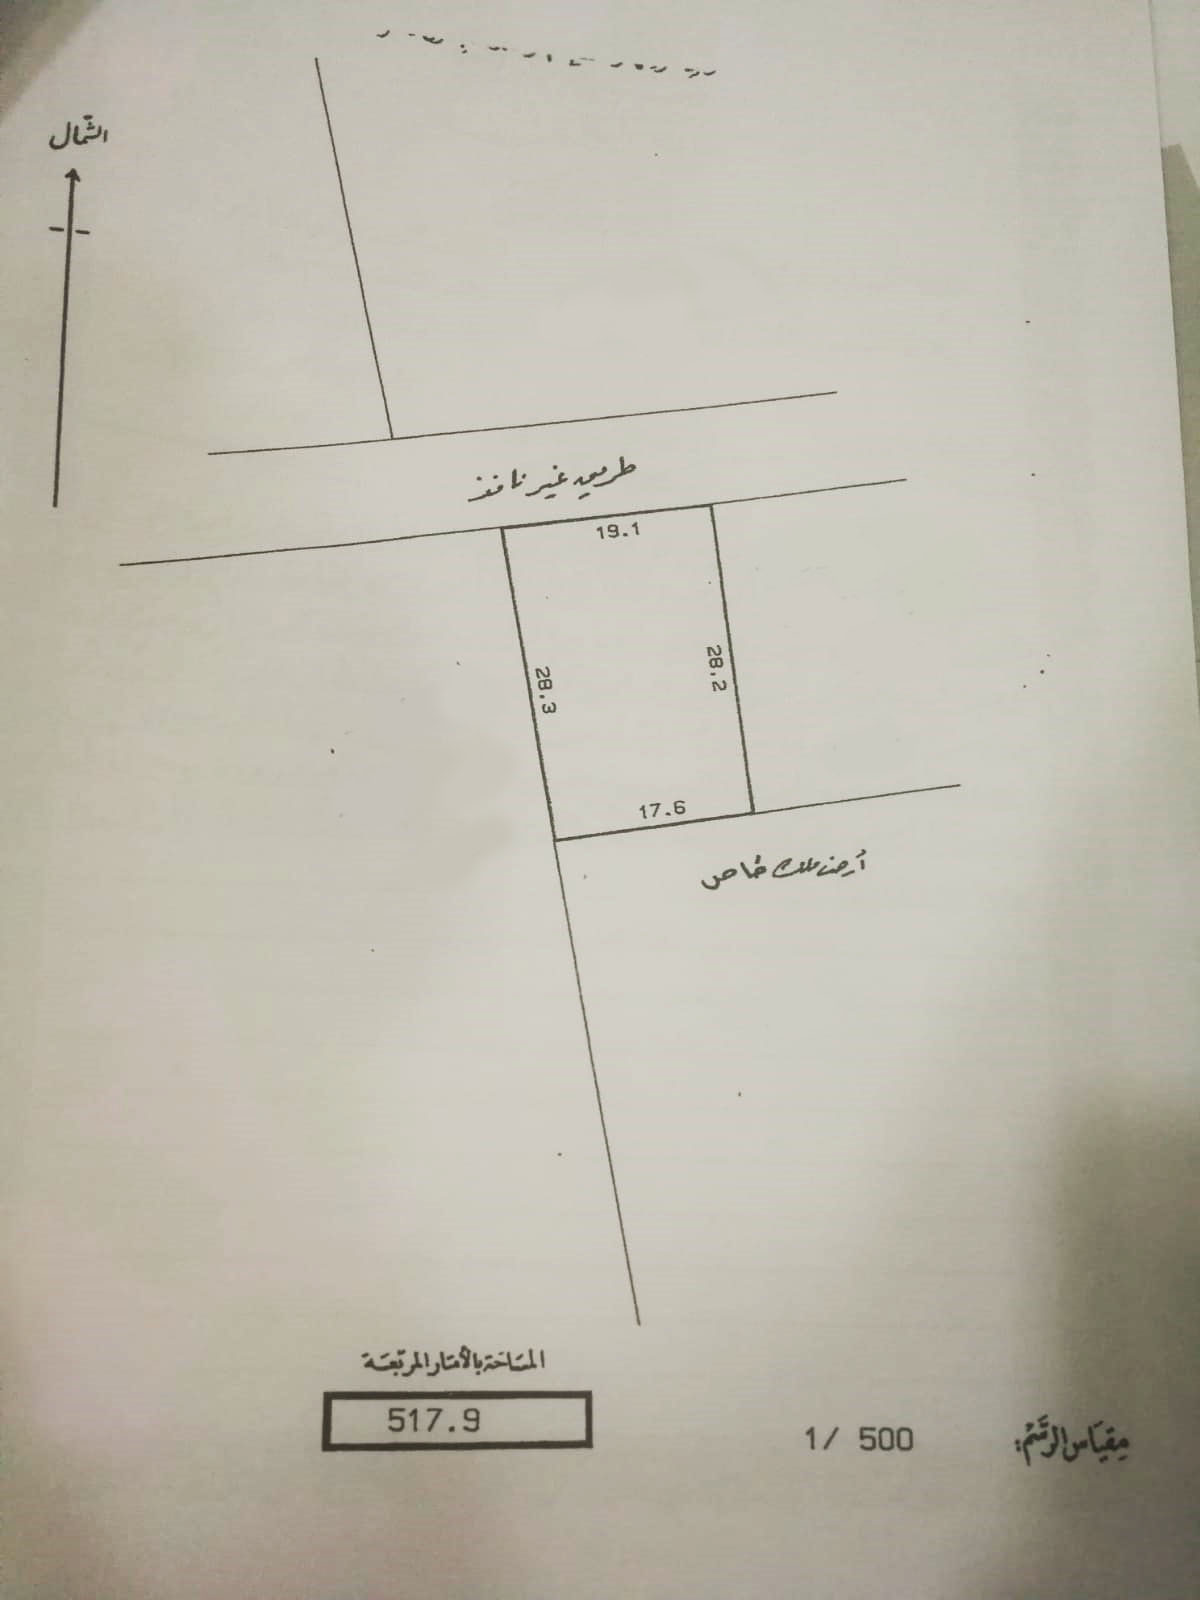 For sale residential land investment in Abu Saiba. Ref: ABS-MH-001